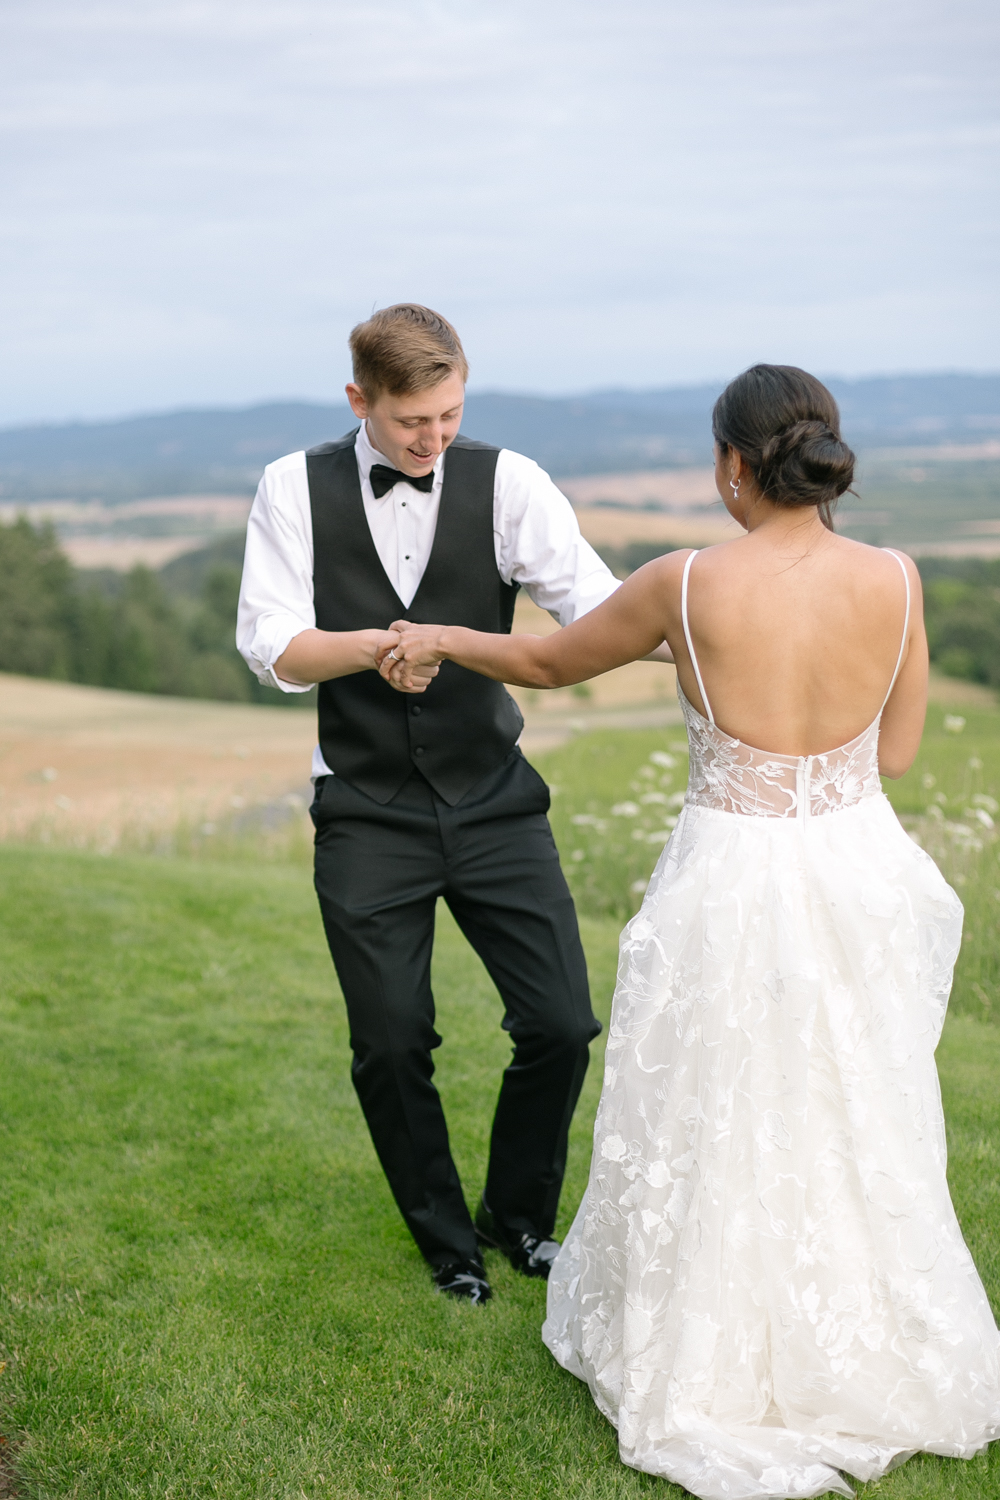 Youngberg Hill Vineyard Wedding in Wine Country Oregon - Corrie Mick Photography-228.jpg